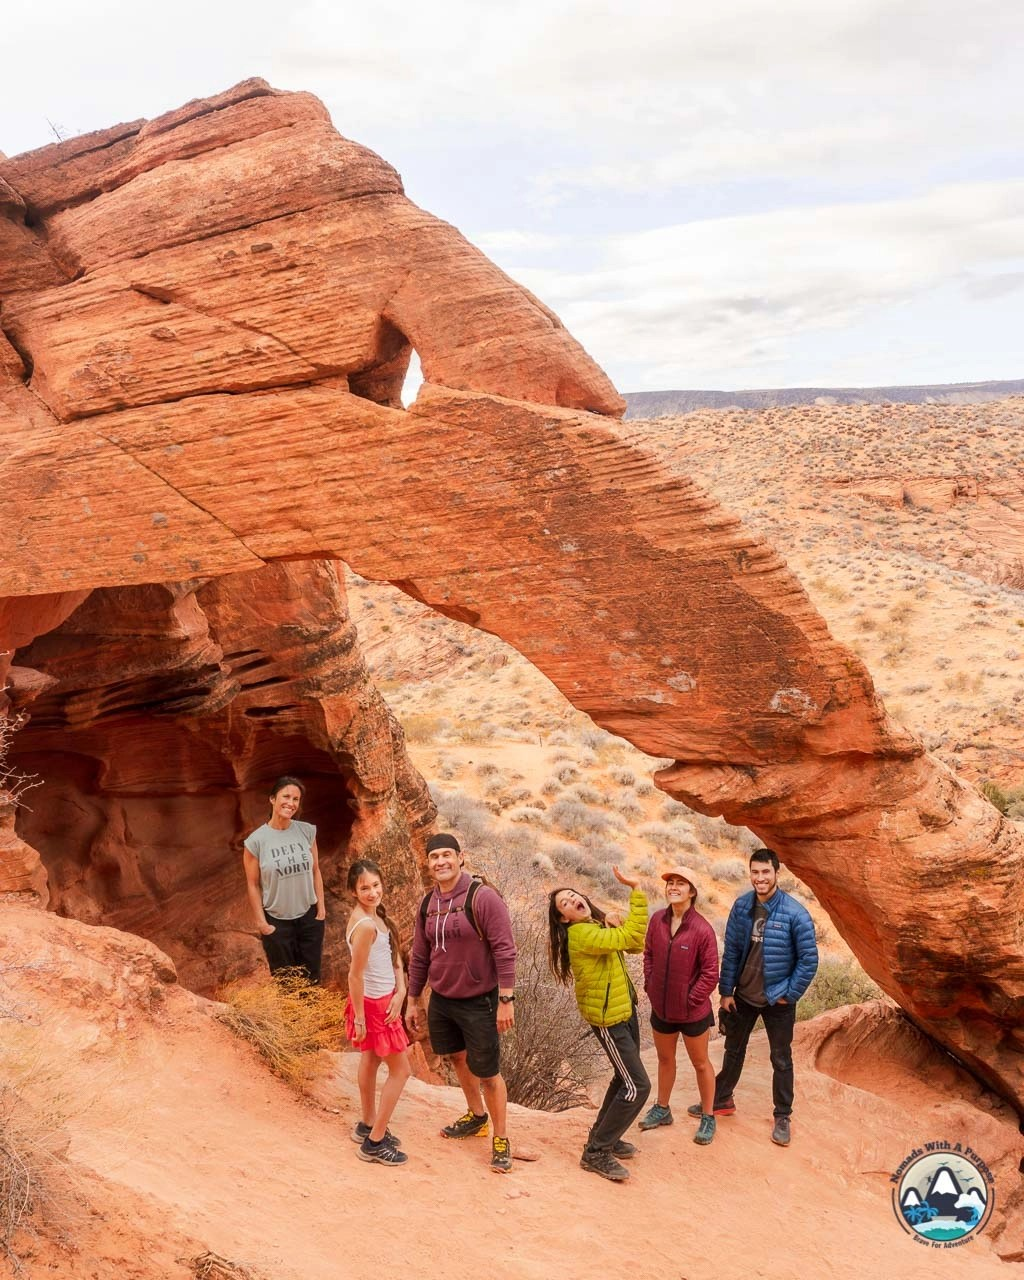 Elephant Arch hiking trail in St George